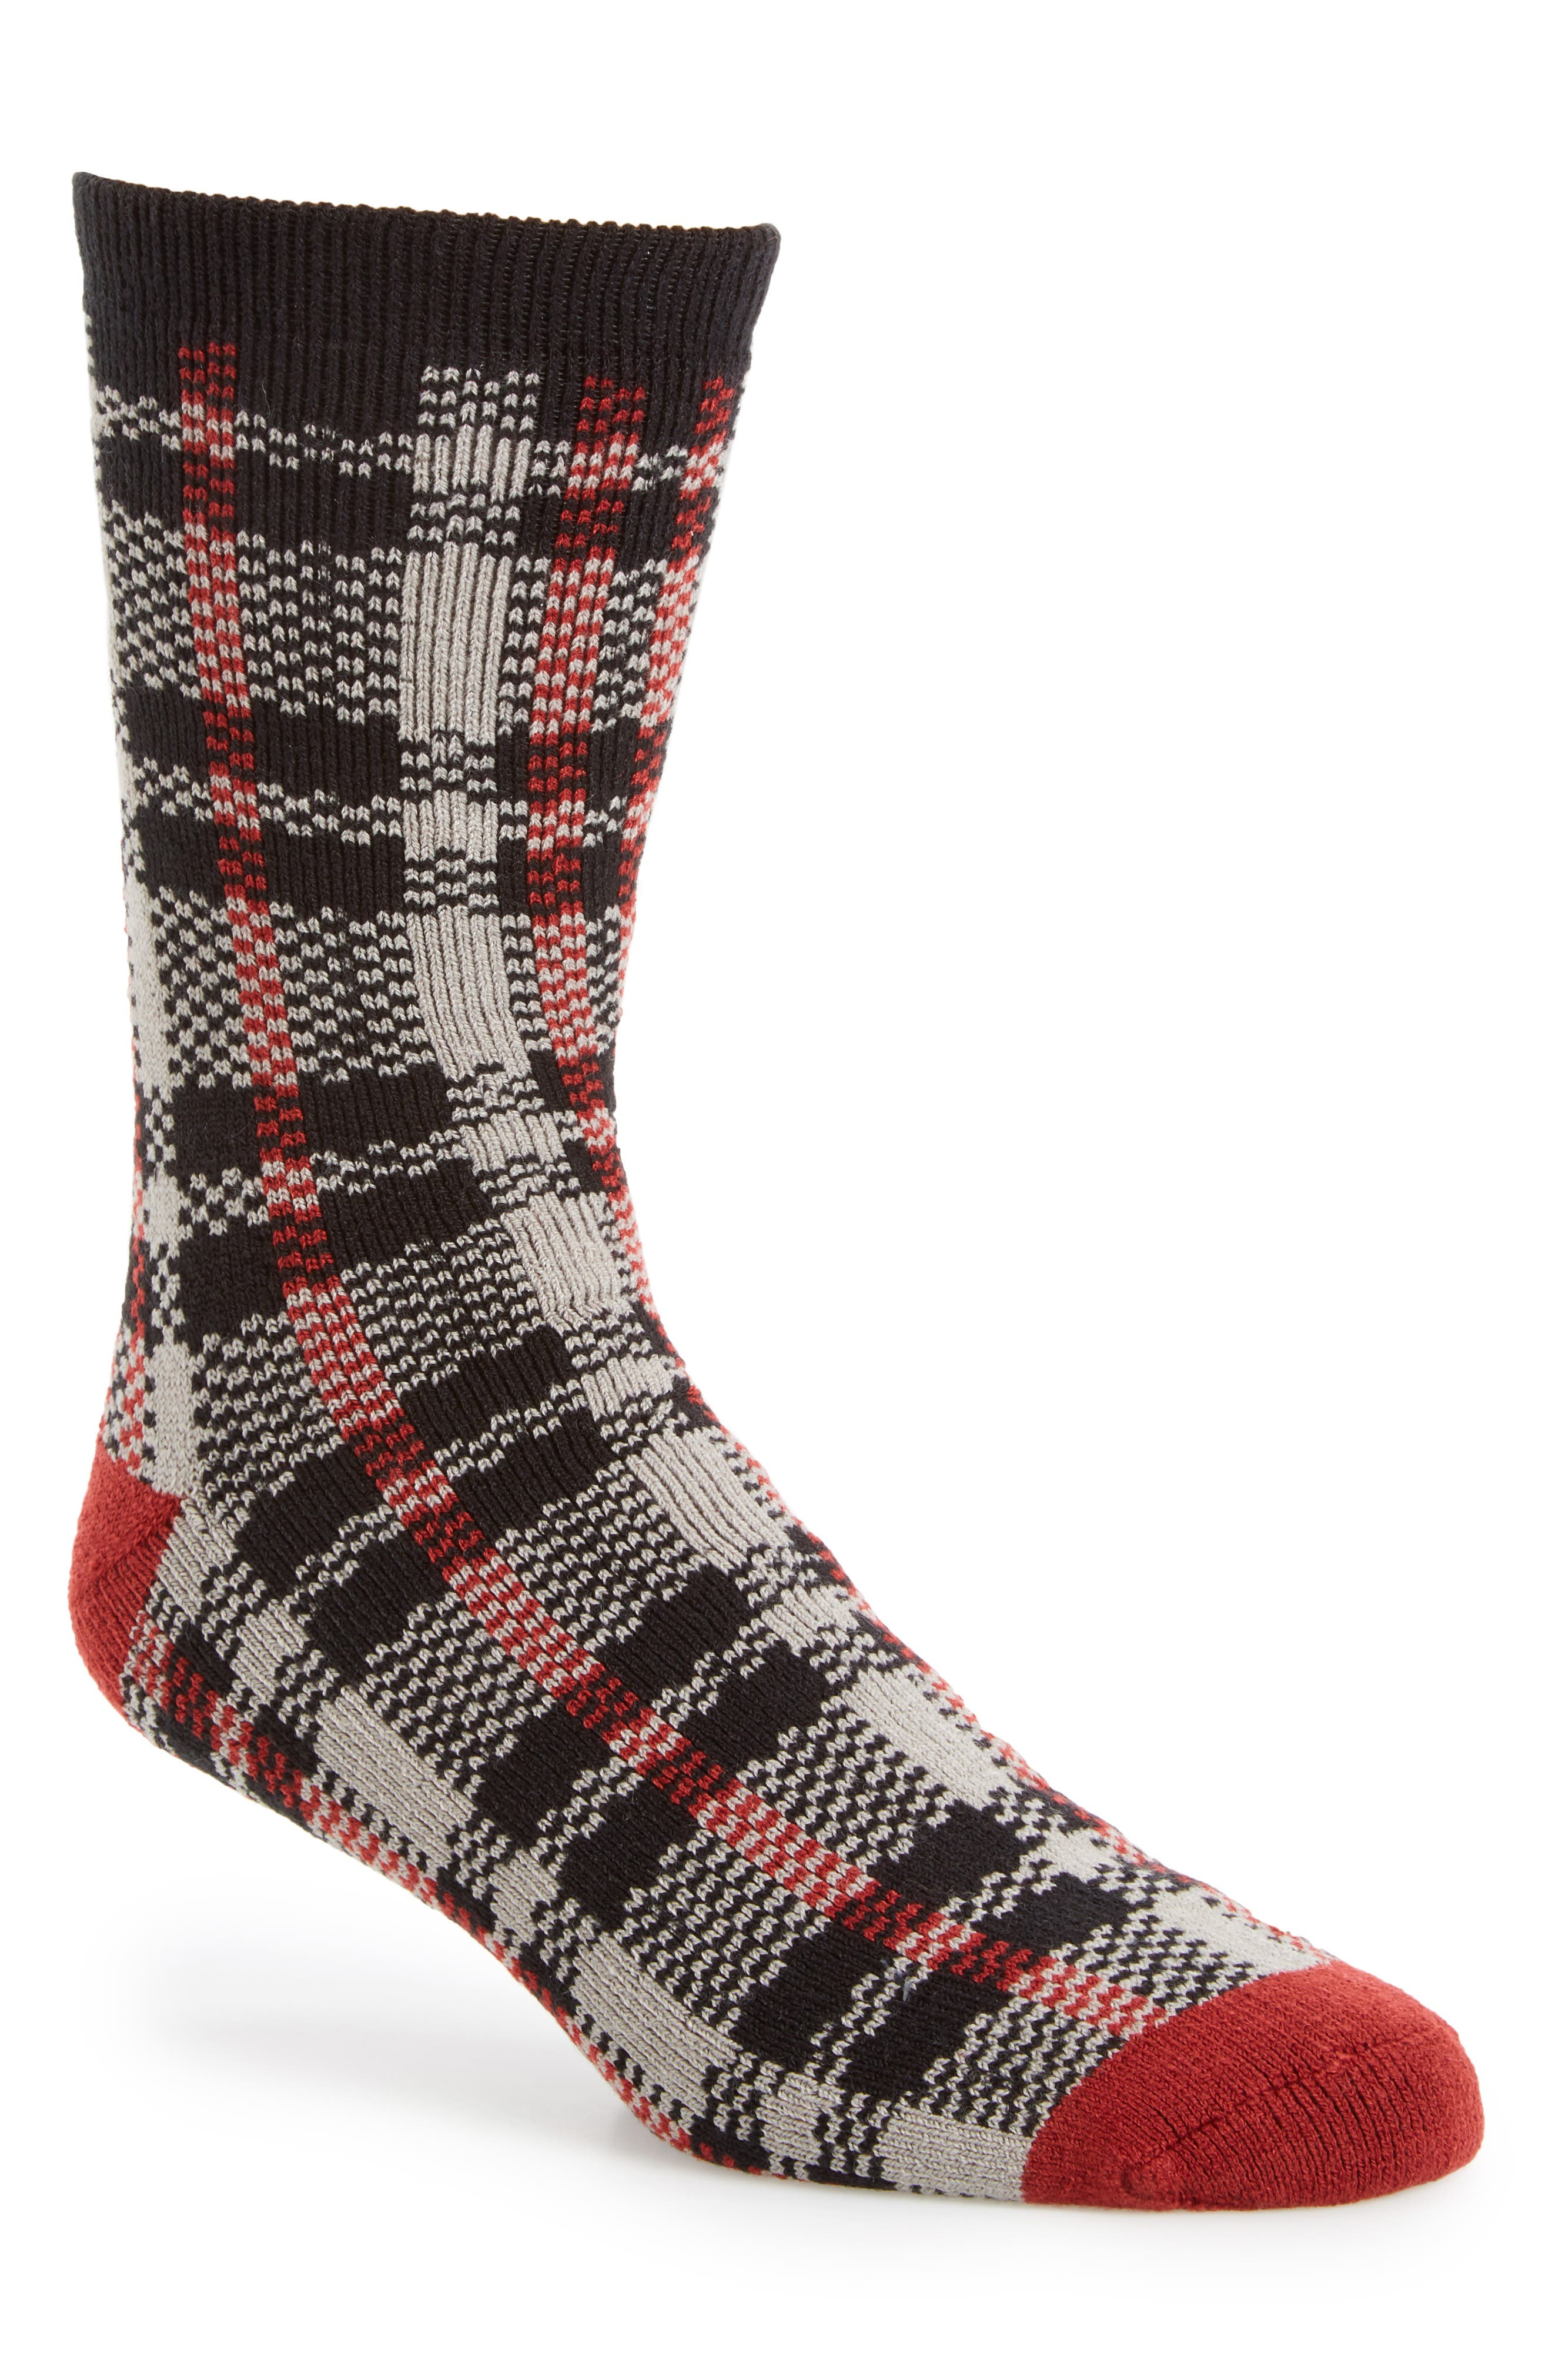 Plaid Socks,                             Main thumbnail 1, color,                             005